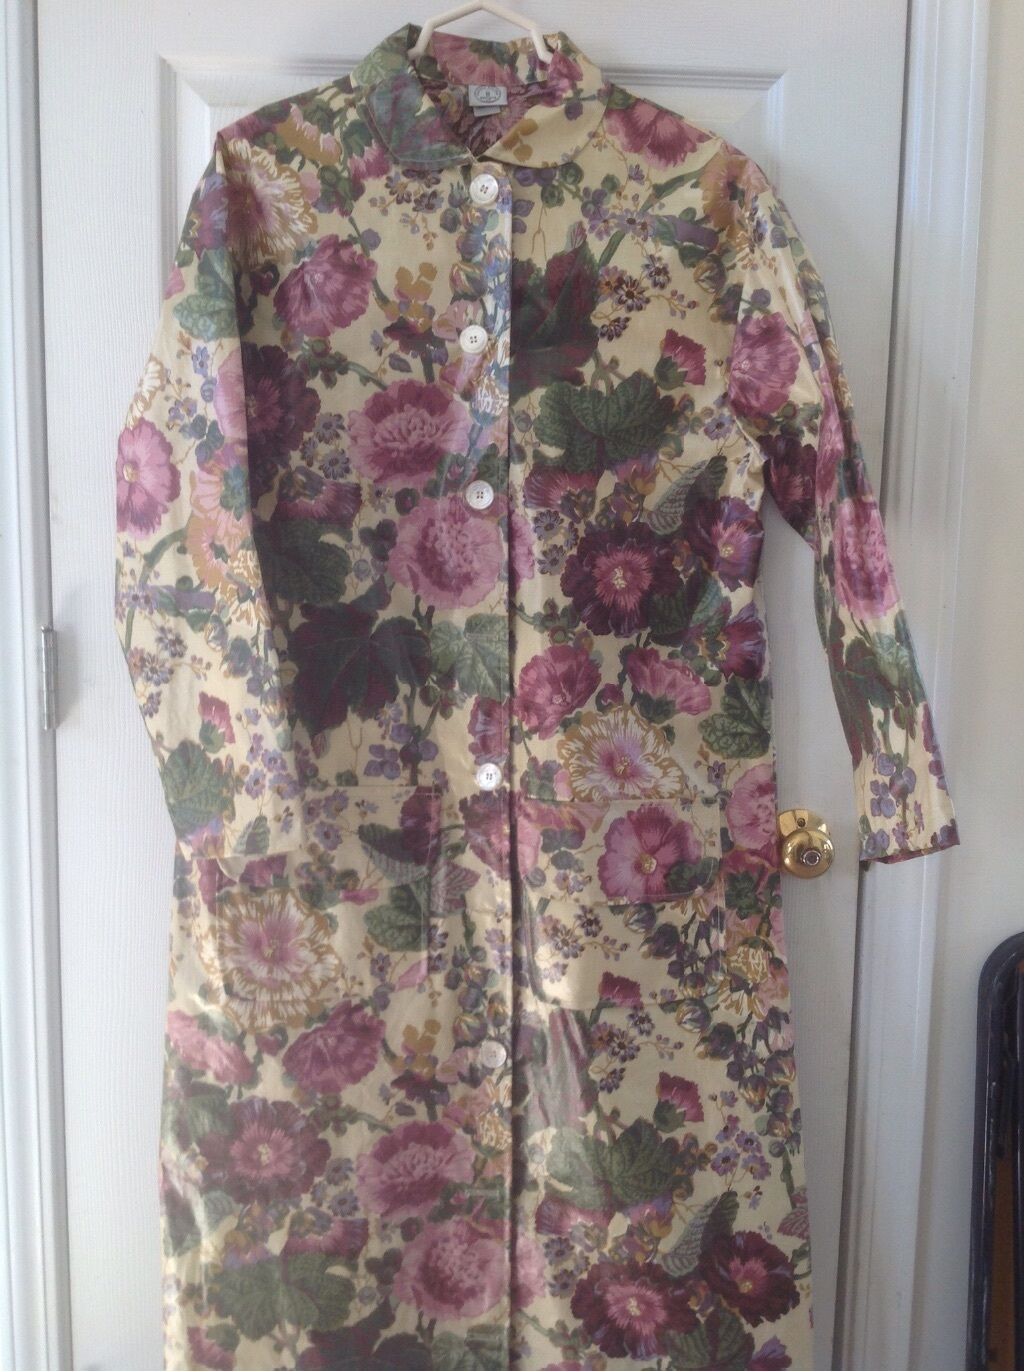 NORDIC HOUSE DESIGNS, Floral, Long Raincoat, Approximately Size M (See Below)